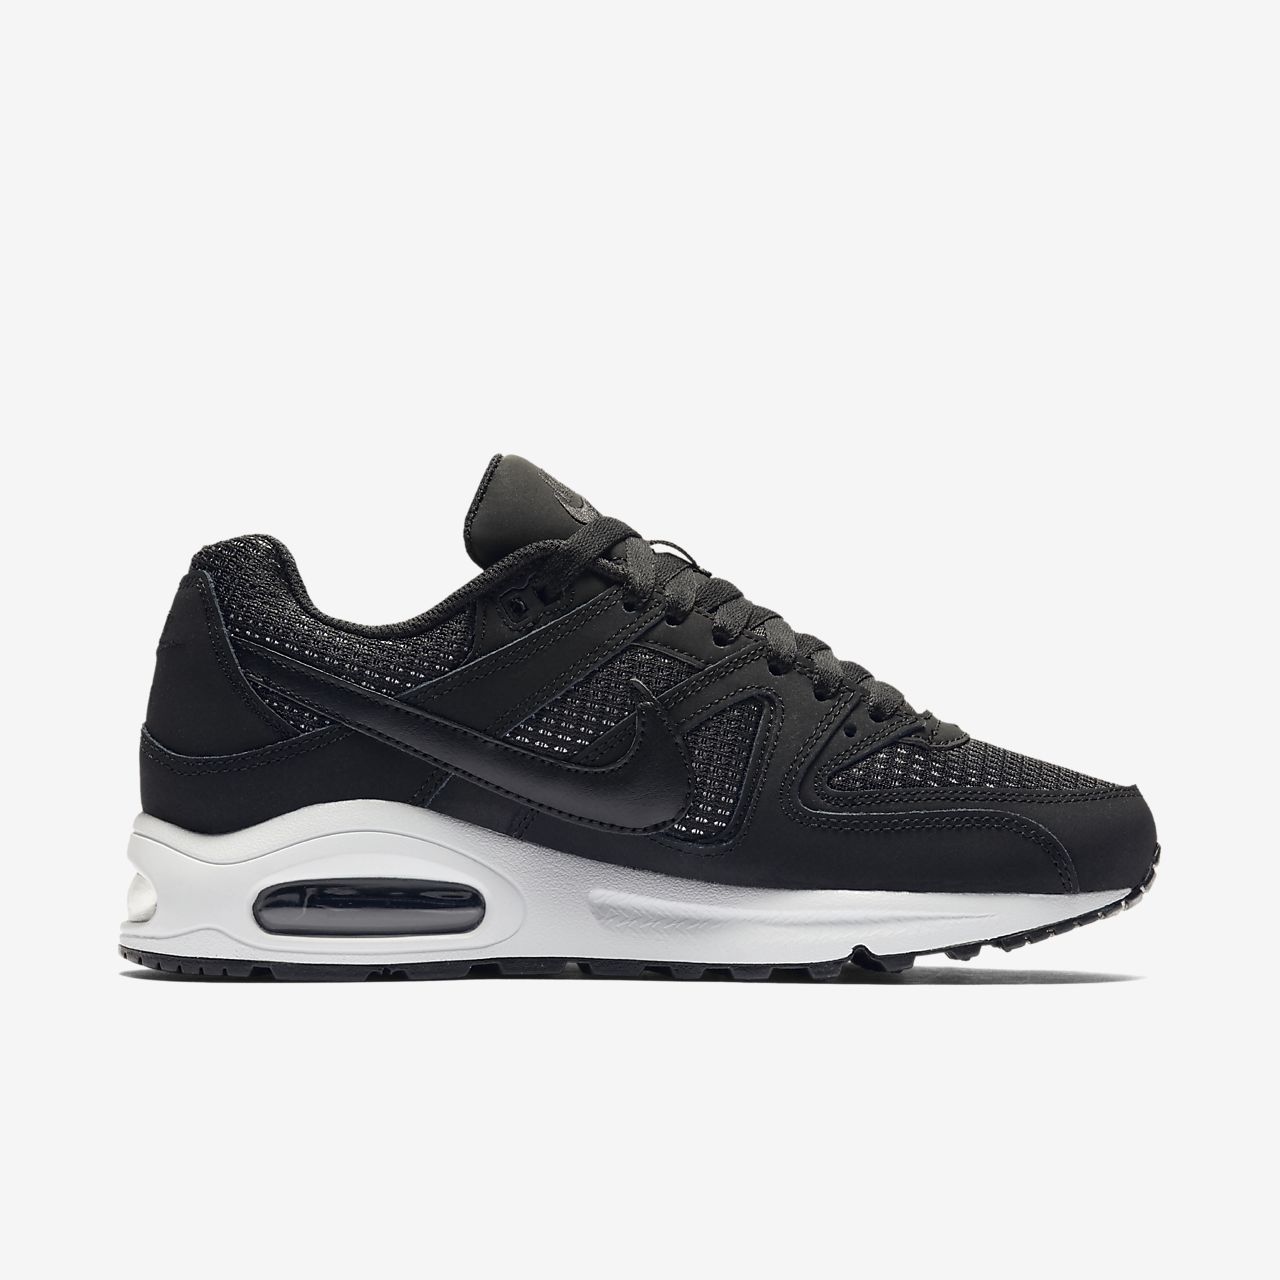 8f8c963473 Nike Air Max Command Women s Shoe. Nike.com GB